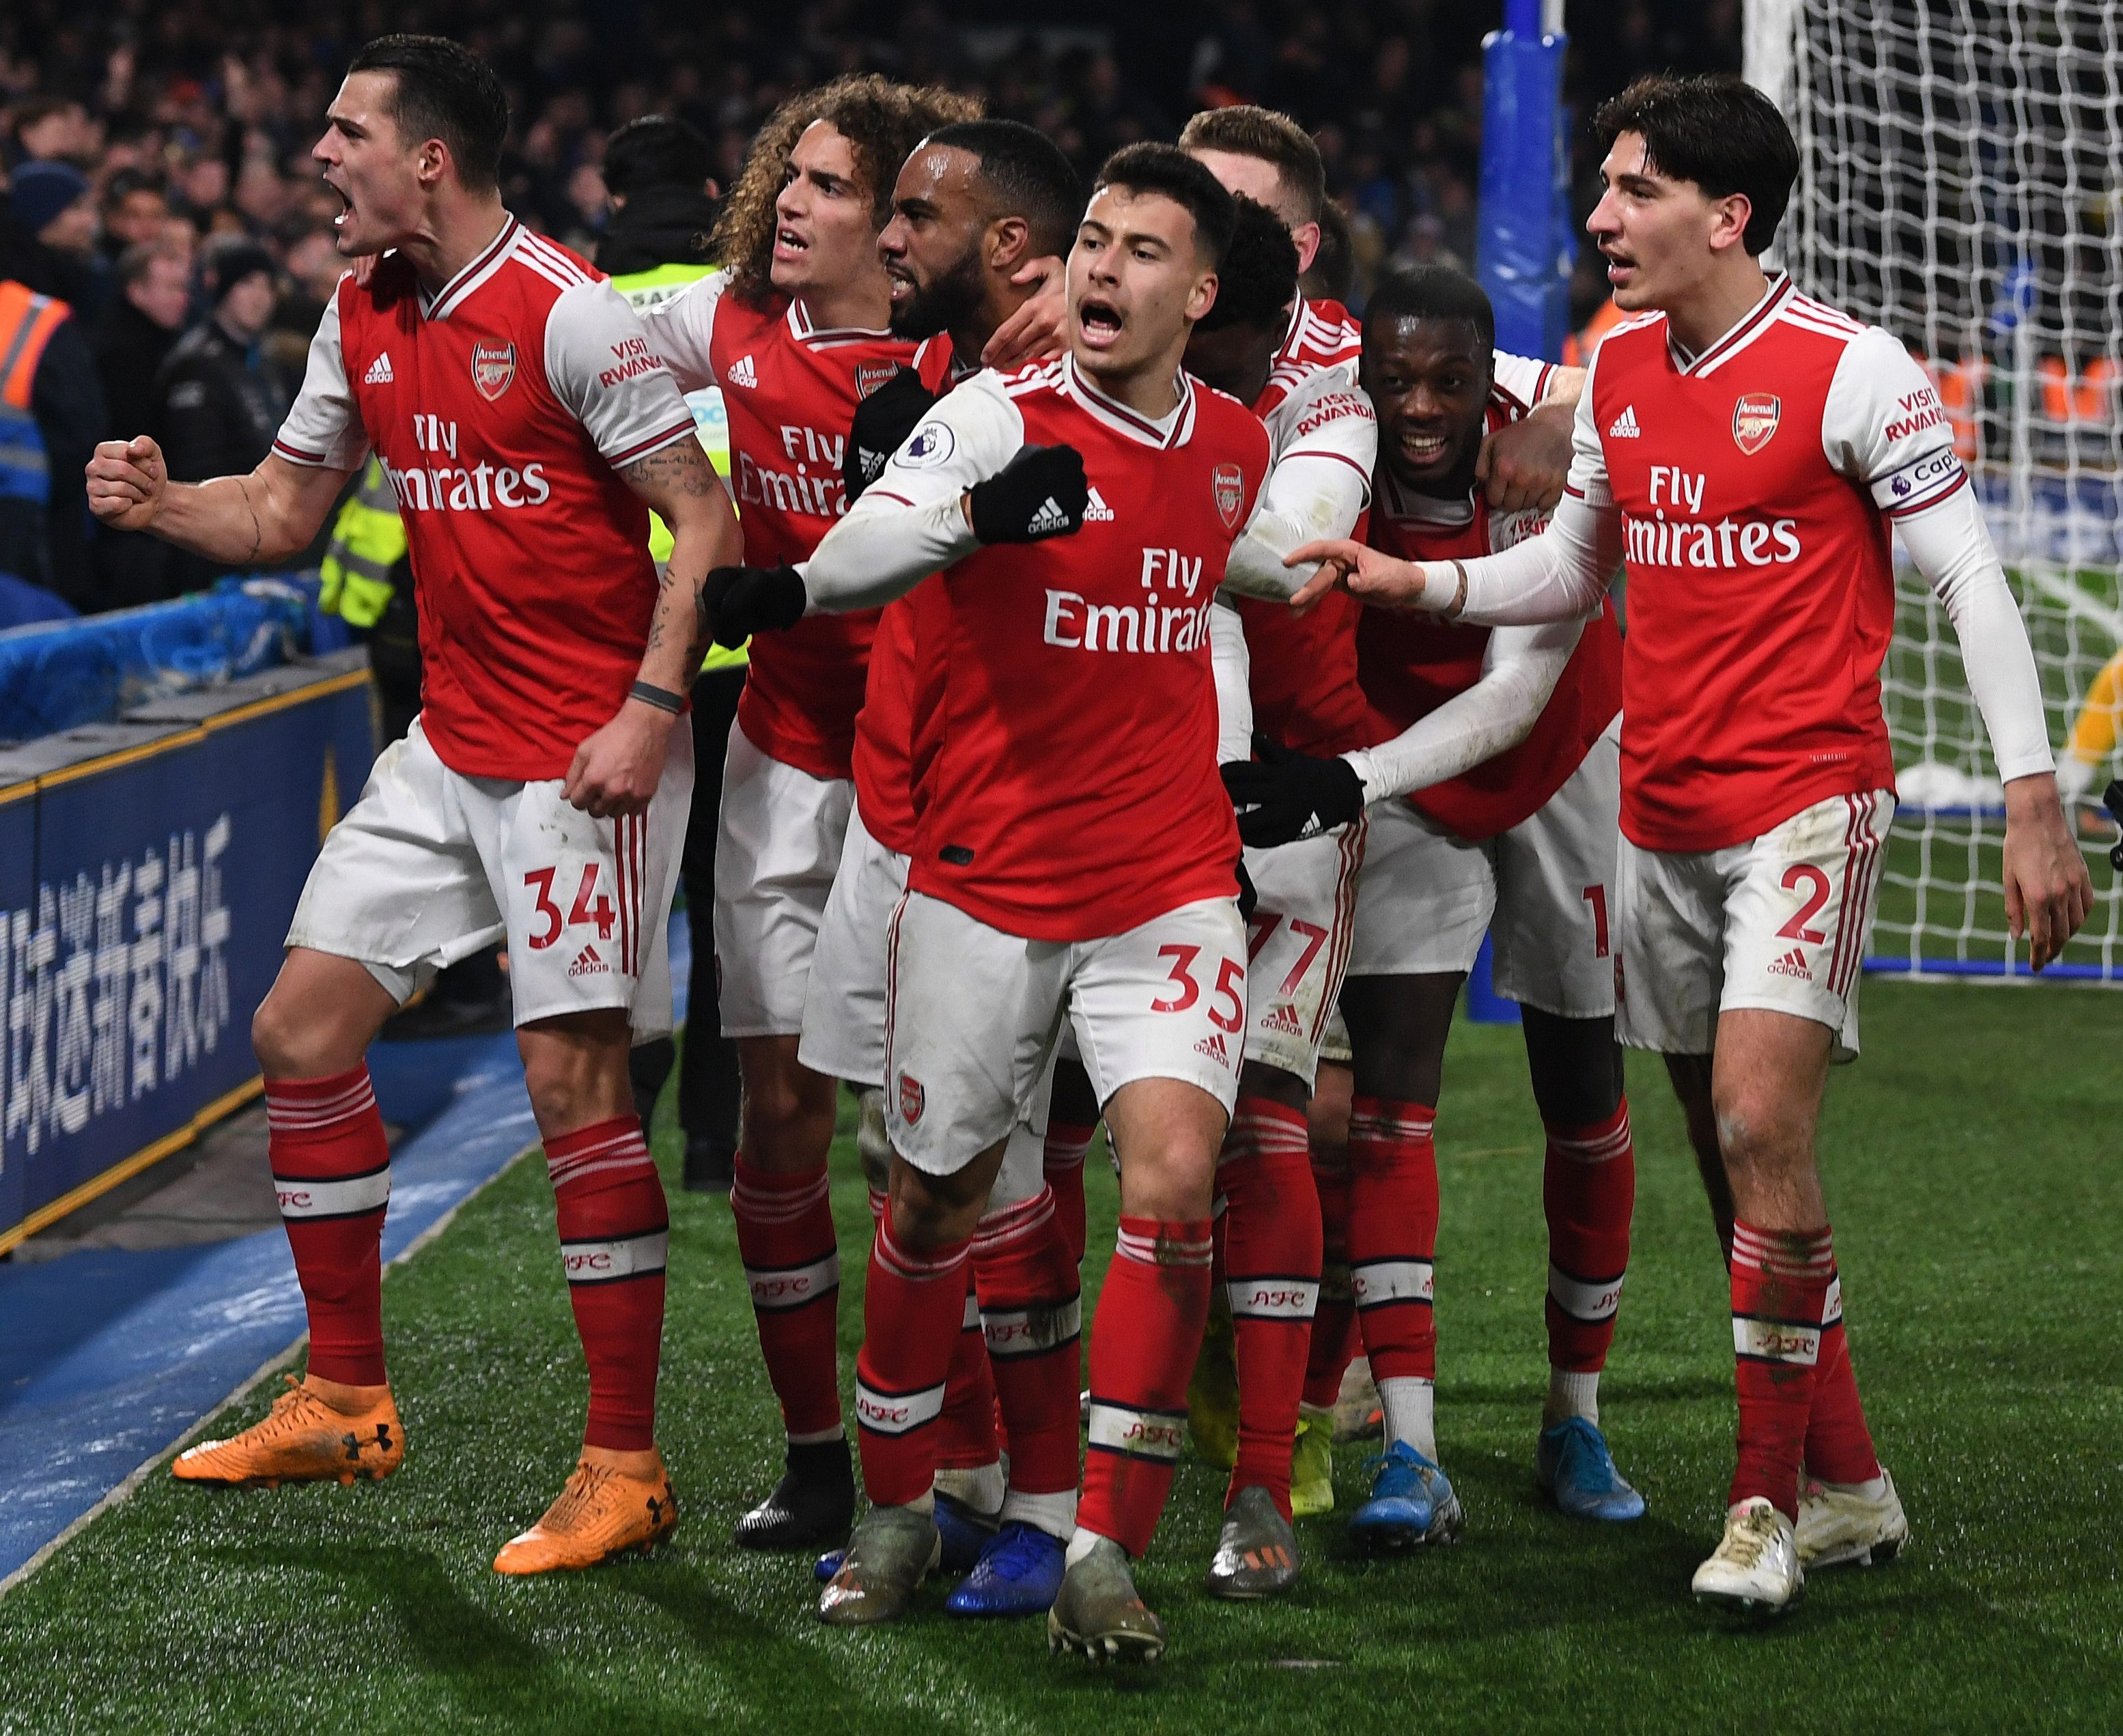 But Arsenal battled back to seal a late point at Stamford Bridge